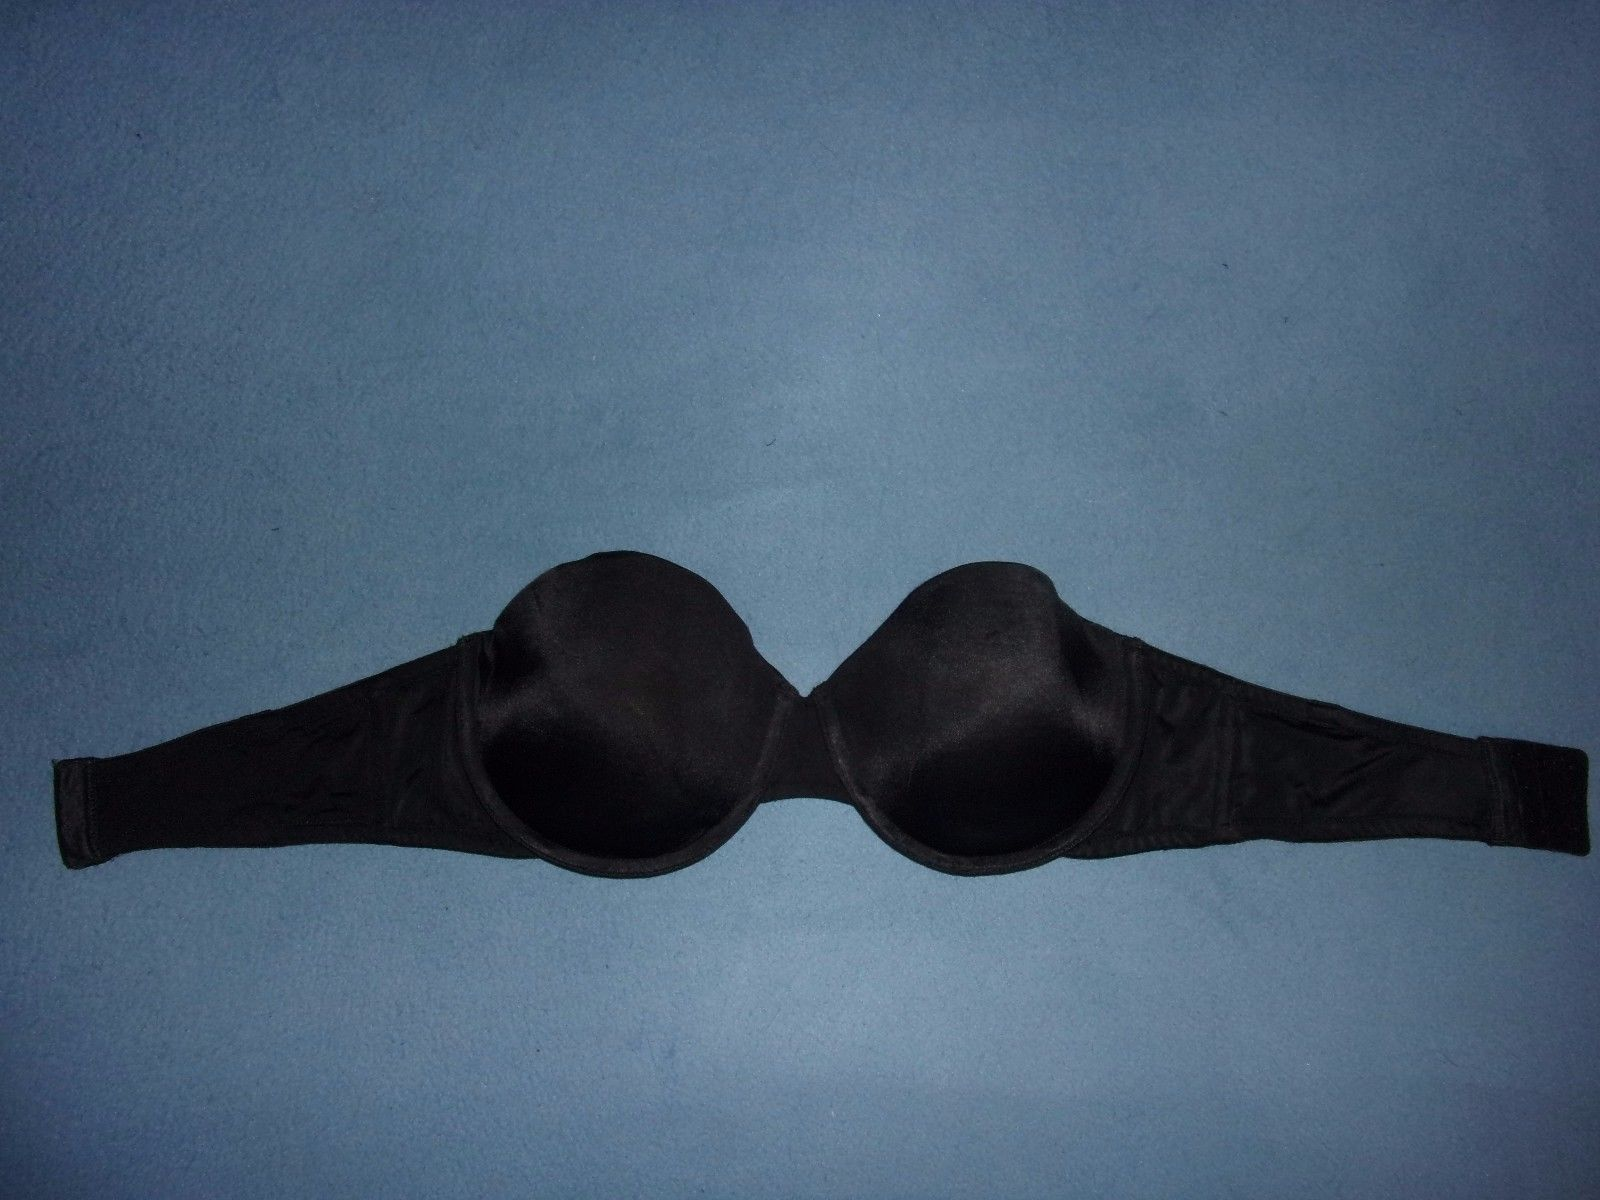 88ca680b82d52 ... 36D Pre-owned Maidenform One Fabulous Fit Strapless Underwire Bra 7955  ...